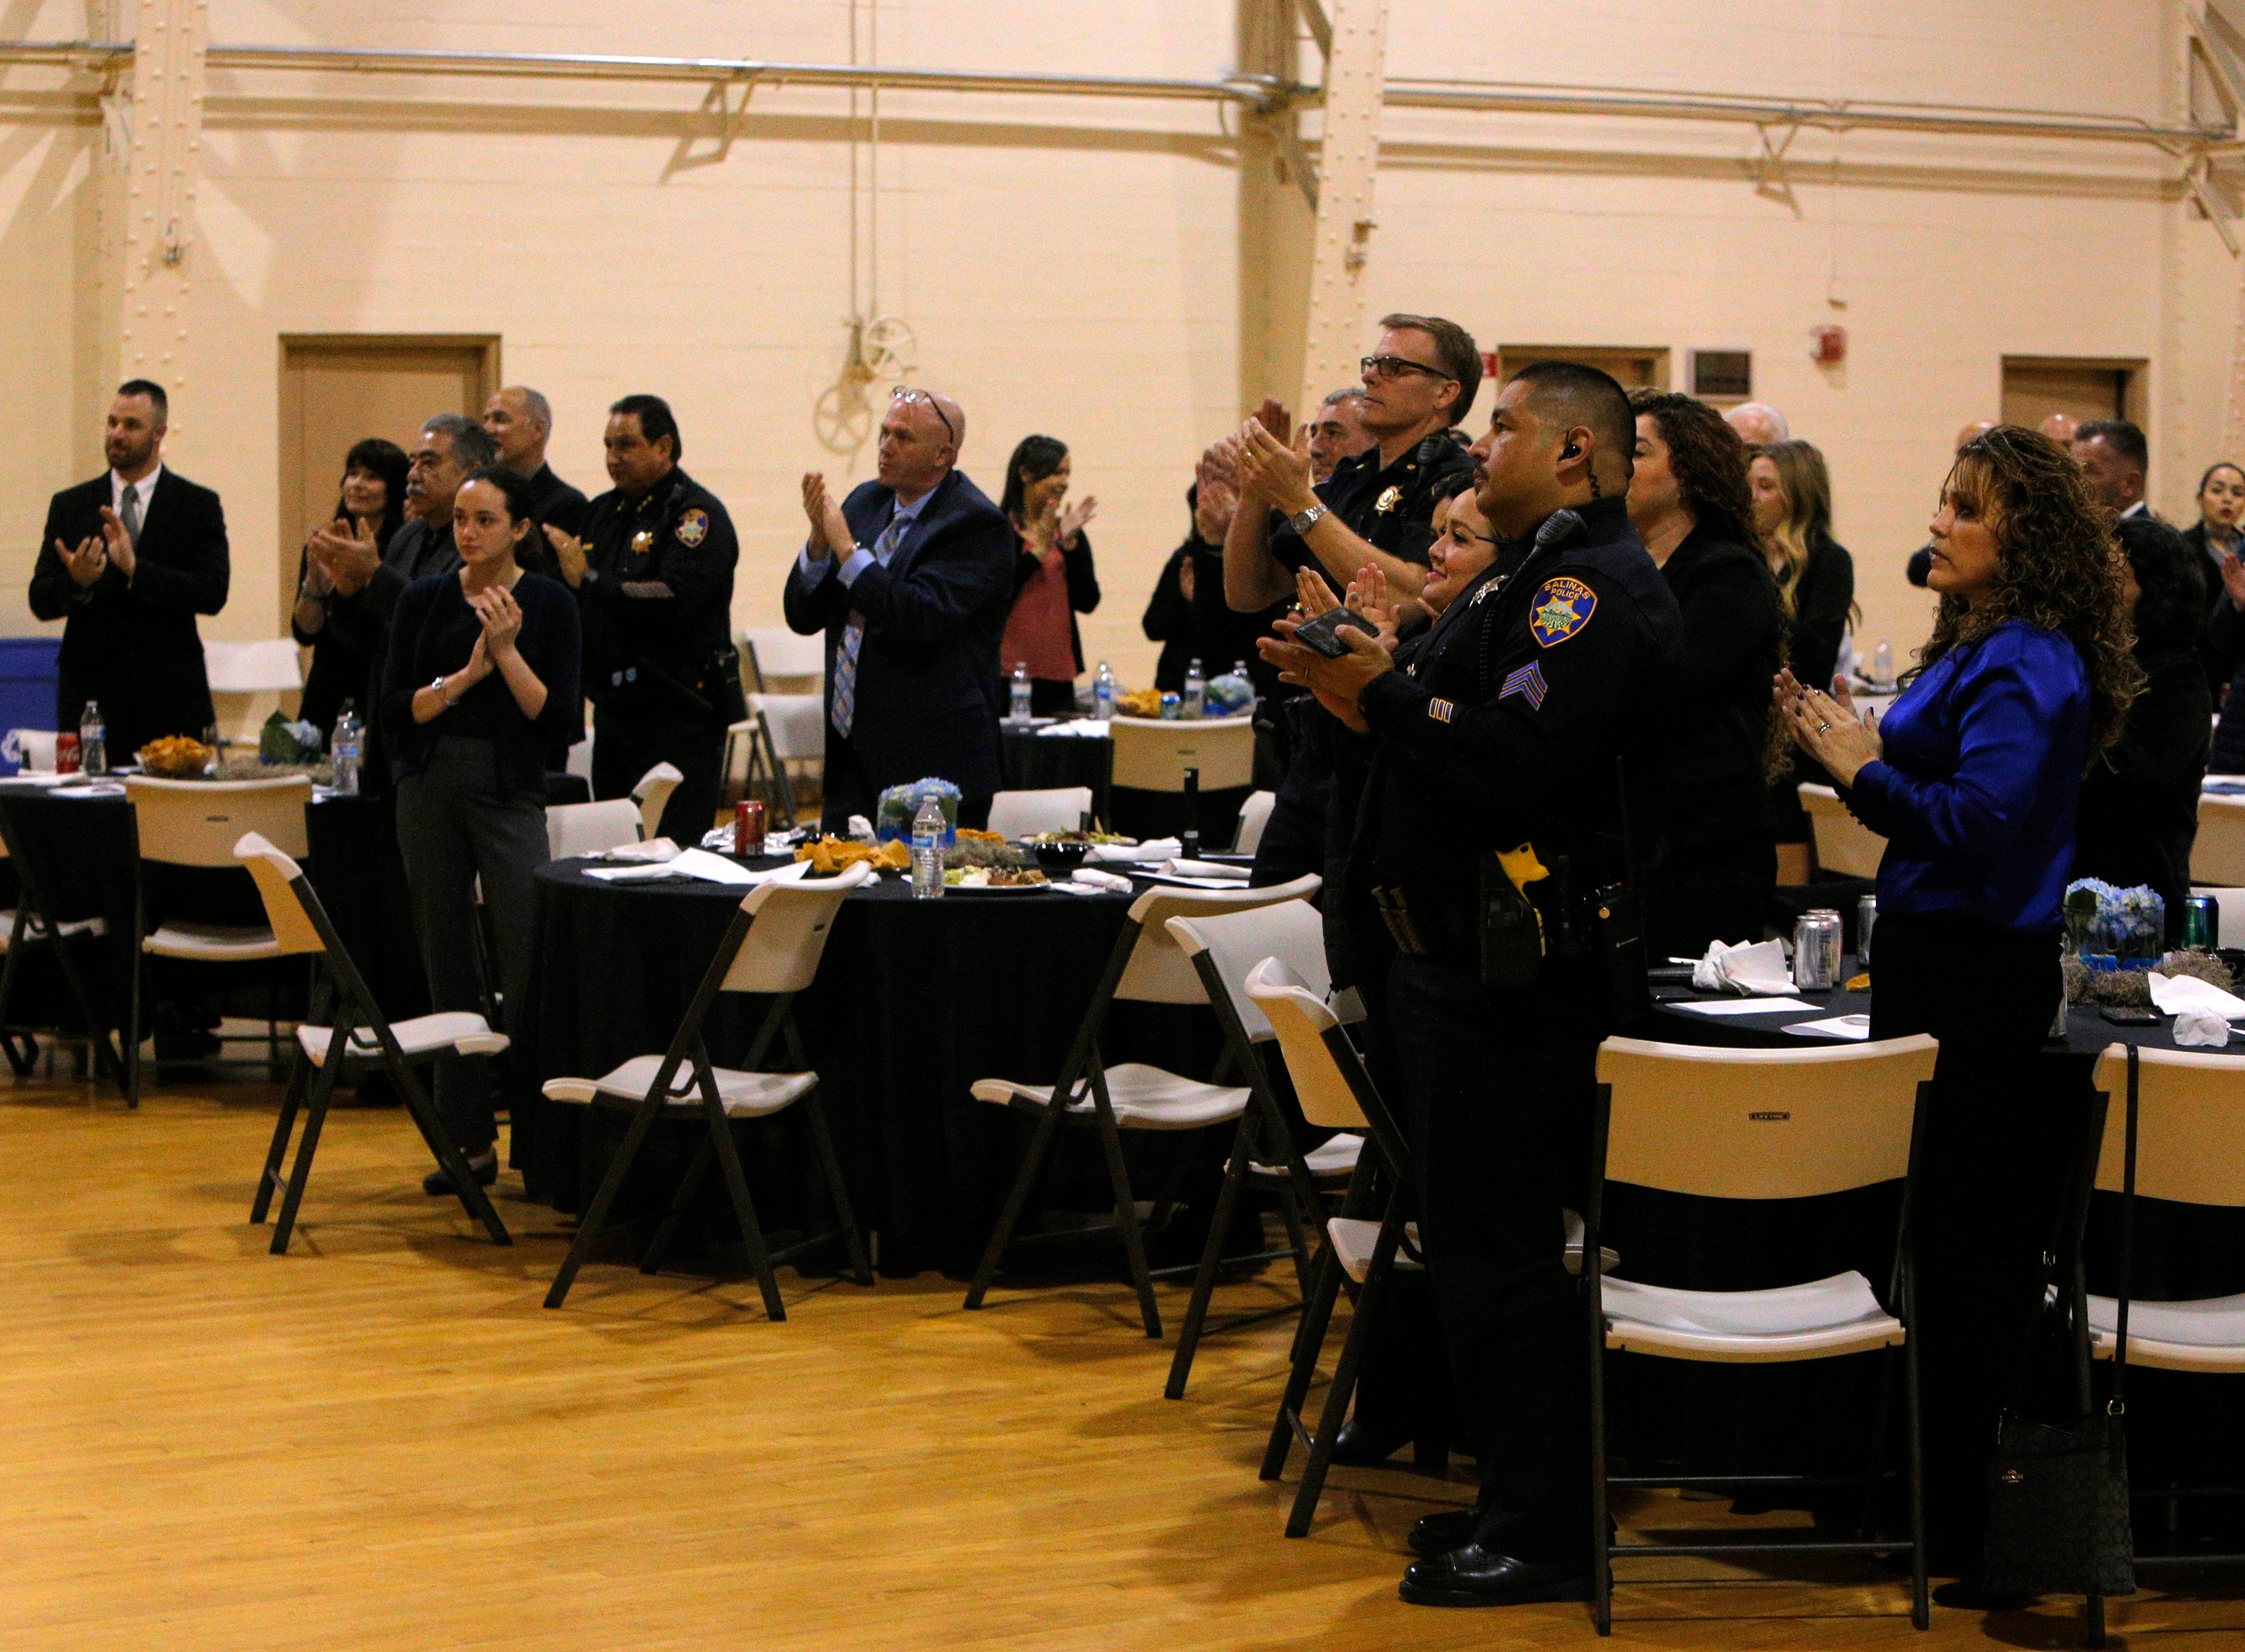 The audience applauds March 14, 2019, at the Salinas Police Department's 2018 awards ceremony.